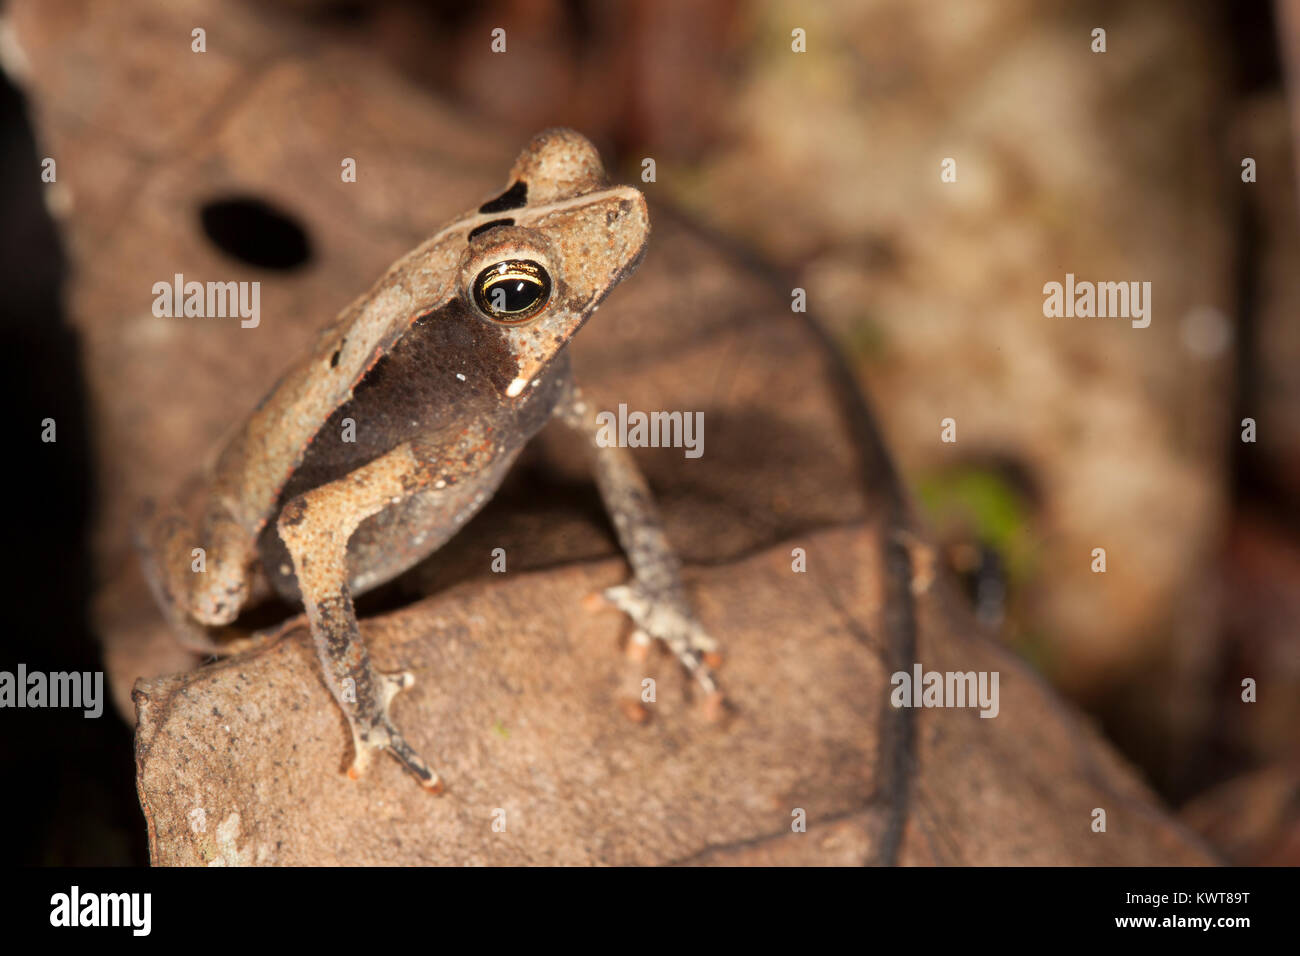 A small toad (Rhinella proboscidea) perched on a leaf in the Allpahuayo-Mishana National Reserve (Peru). - Stock Image